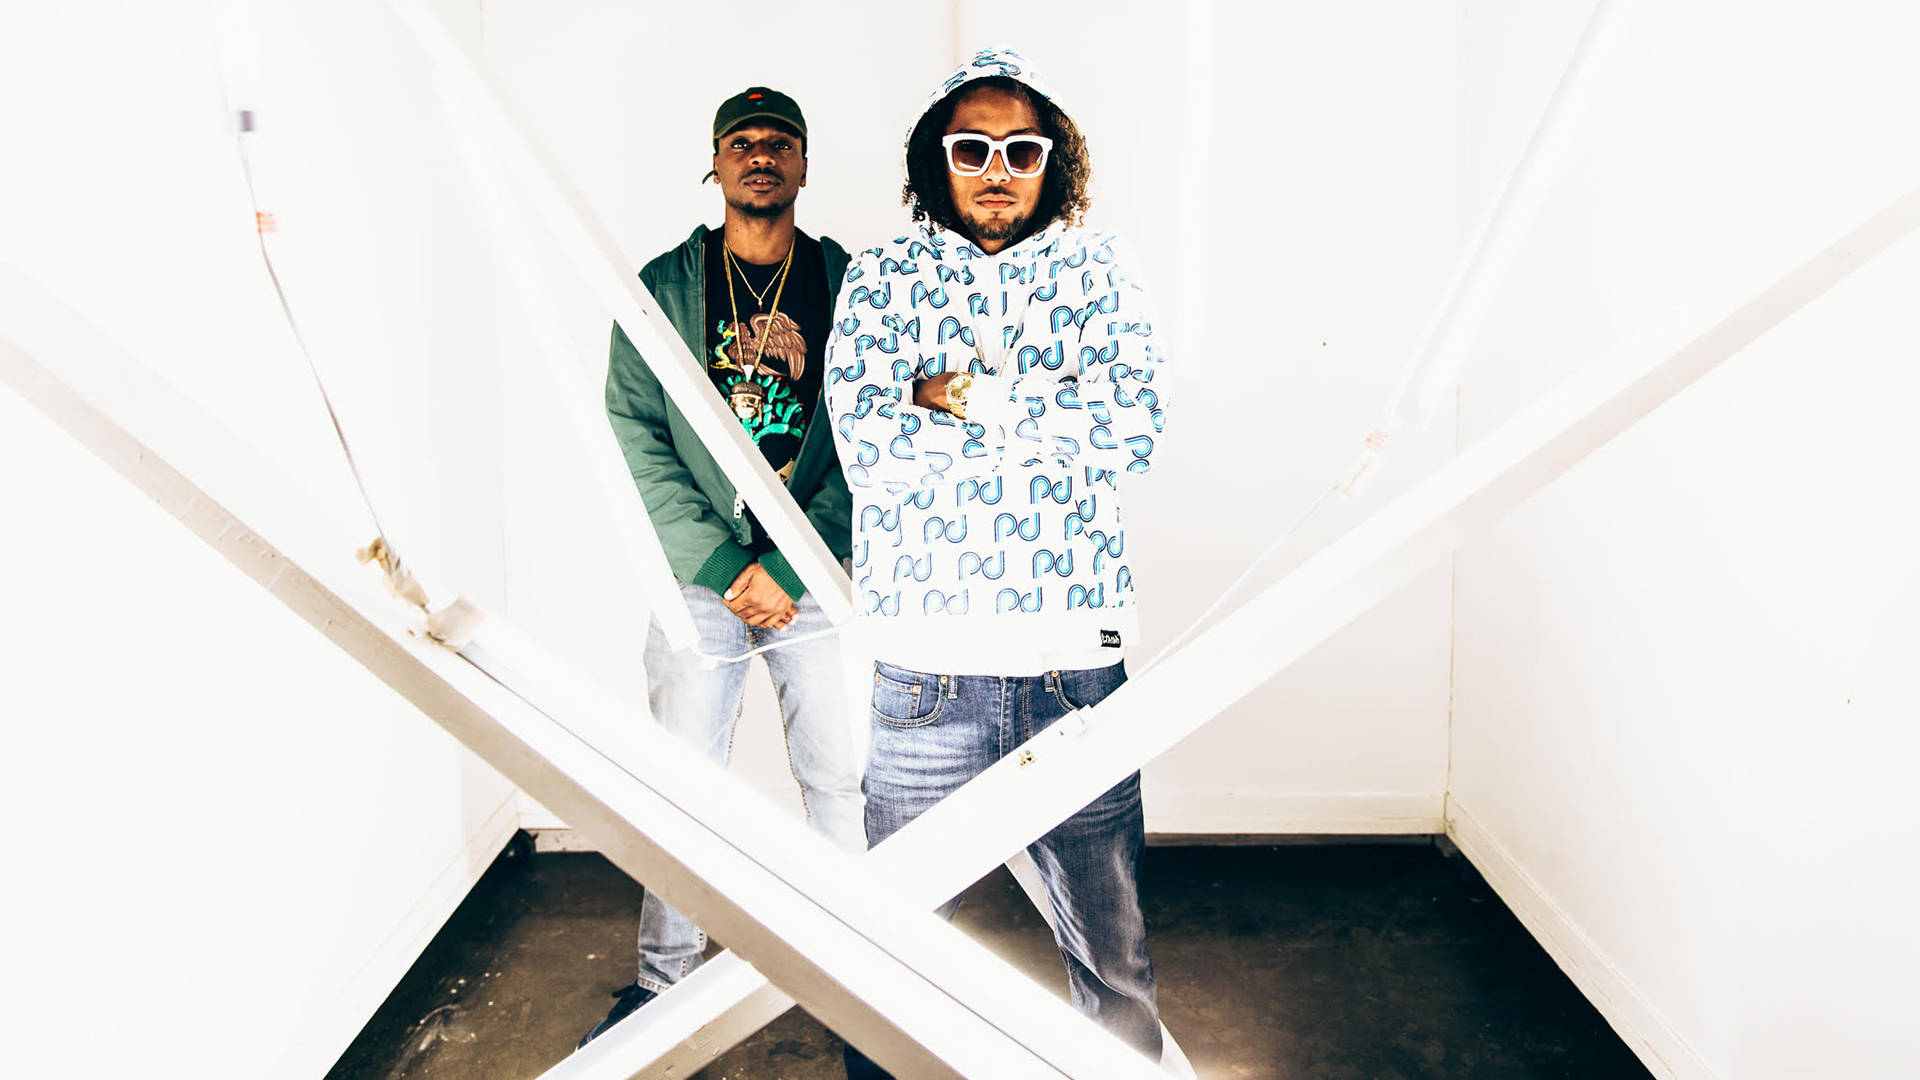 With 'Manes de Negocio,' Los Rakas position themselves as the heirs of a longstanding Black Panamanian reggaeton tradition. Ghost